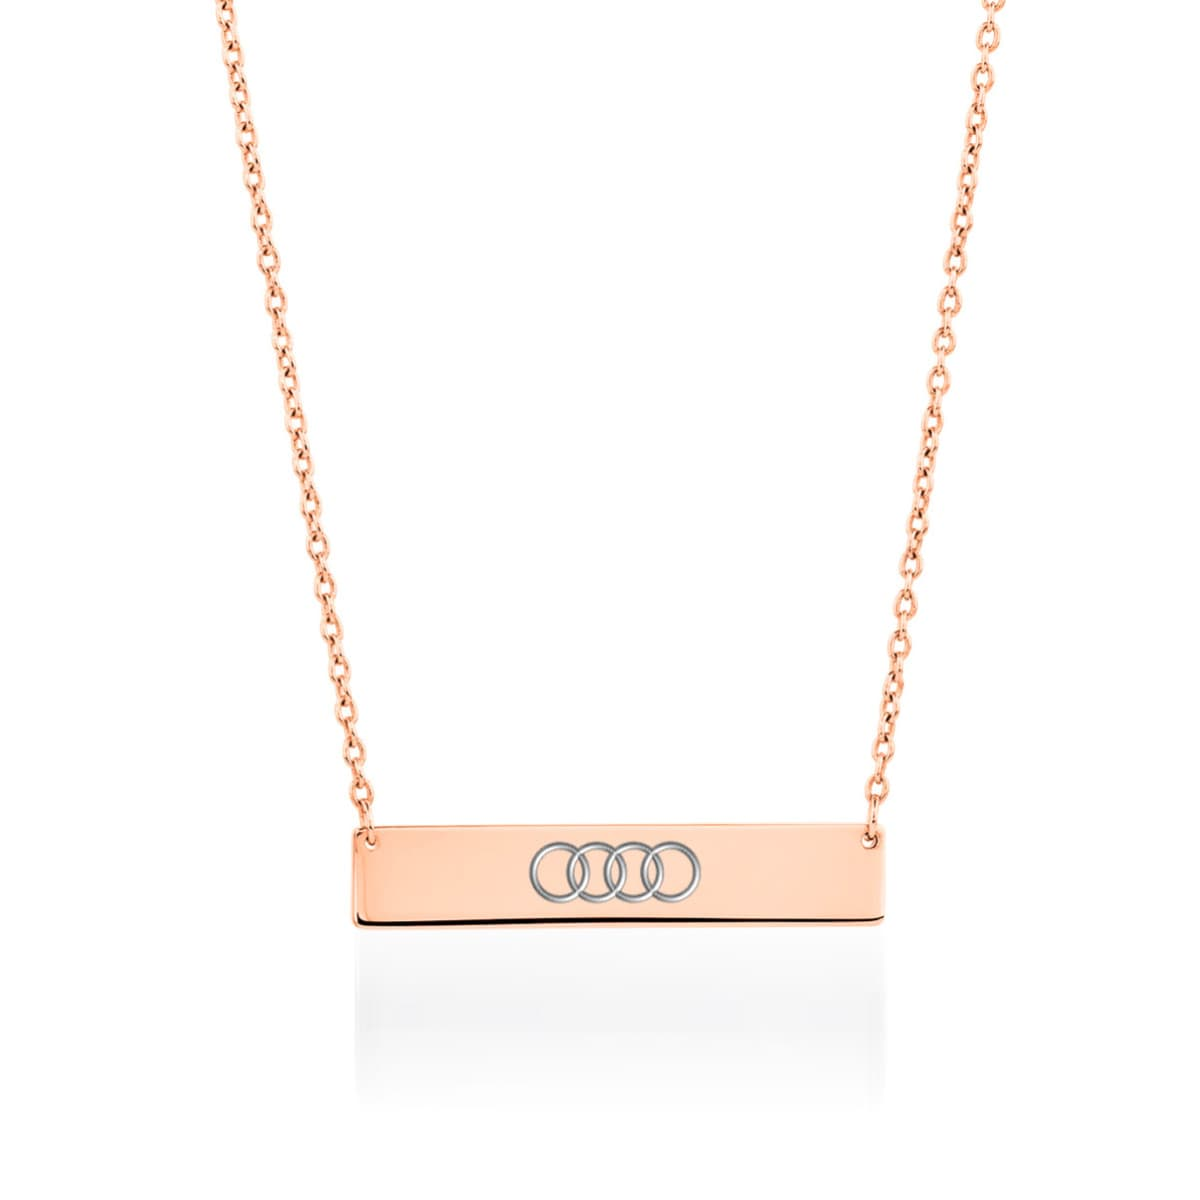 Minimalist Bar | 18k Rose Gold | Necklace | Engravable